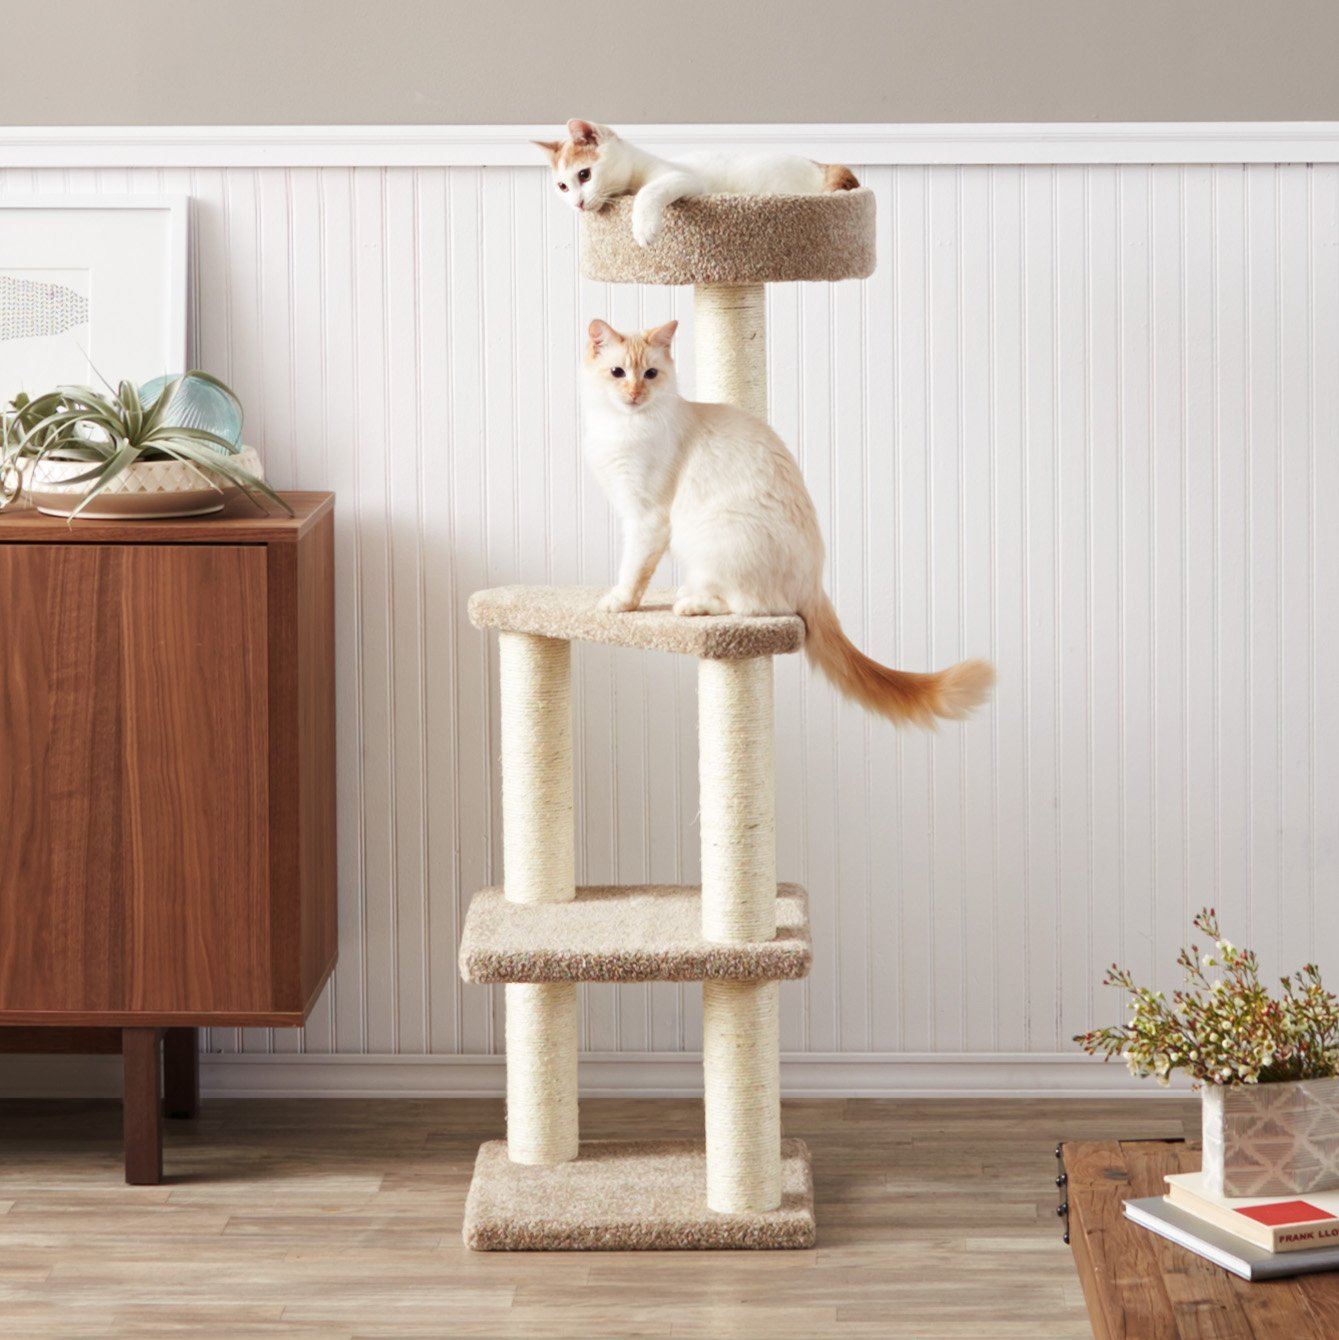 The AmazonBasics Cat Tree With Scratching Posts Stands At About 4 Feet, Has  3 Platforms, Which Includes A Neat Bowl Bed At The Top For Your Cat To Take  ...